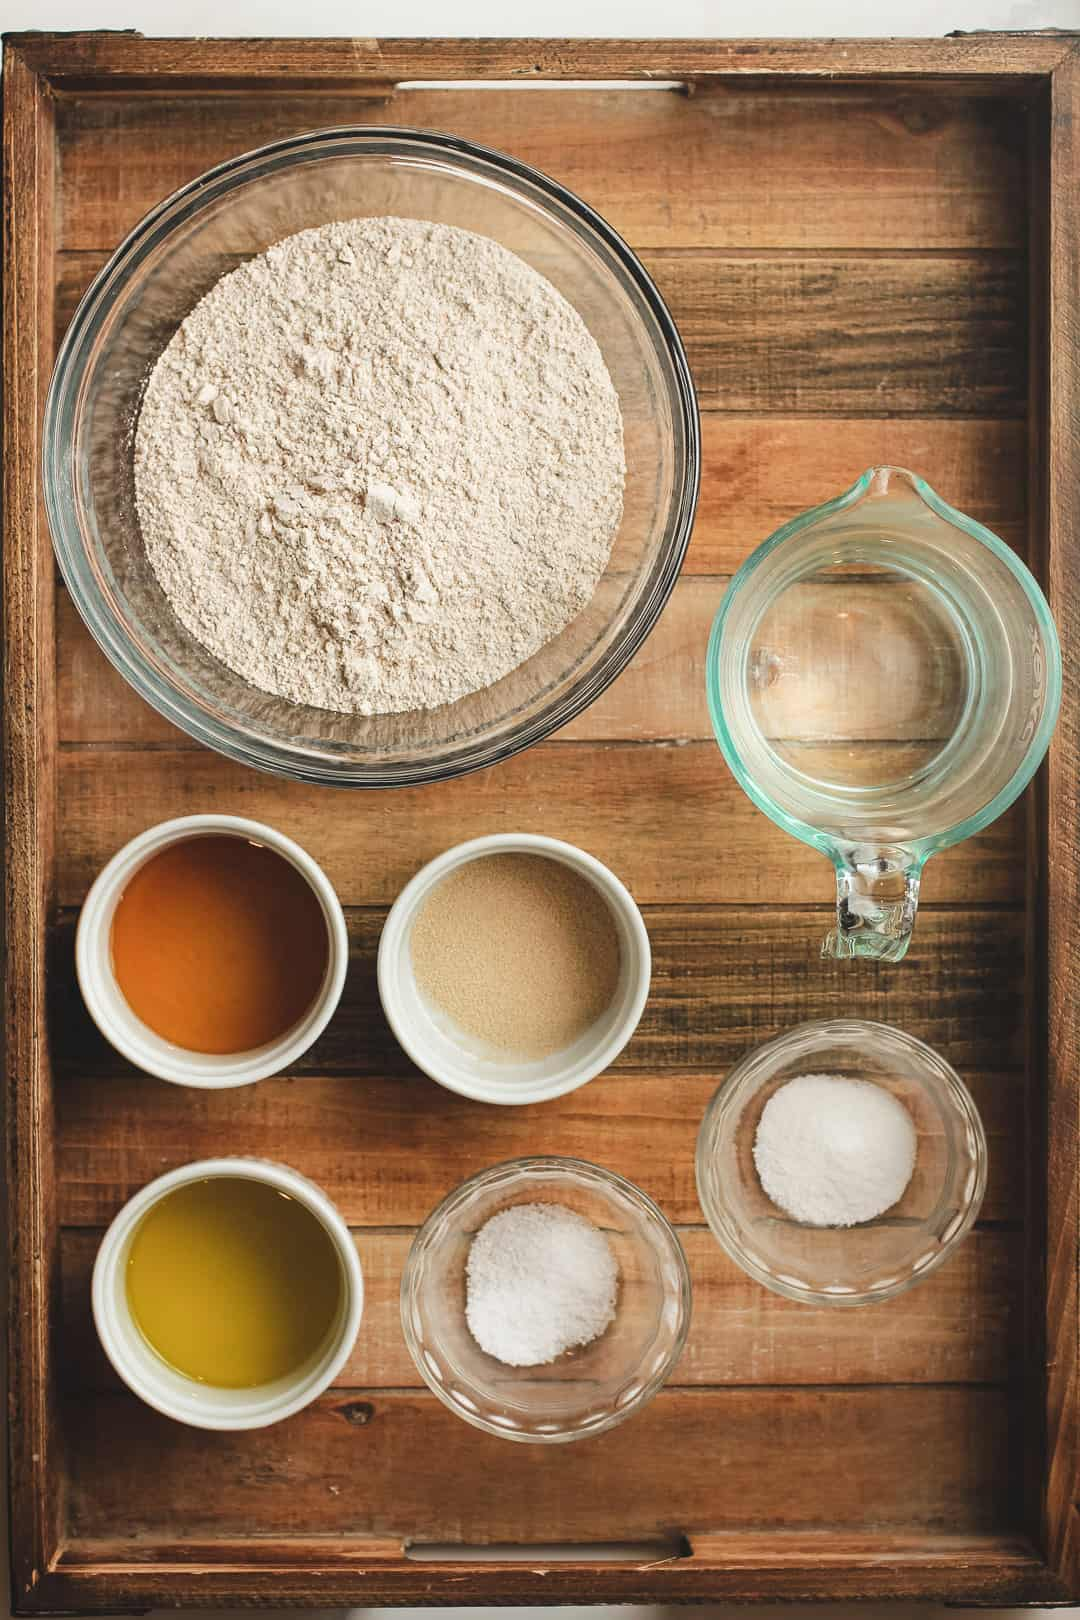 A tray of the recipe ingredients.